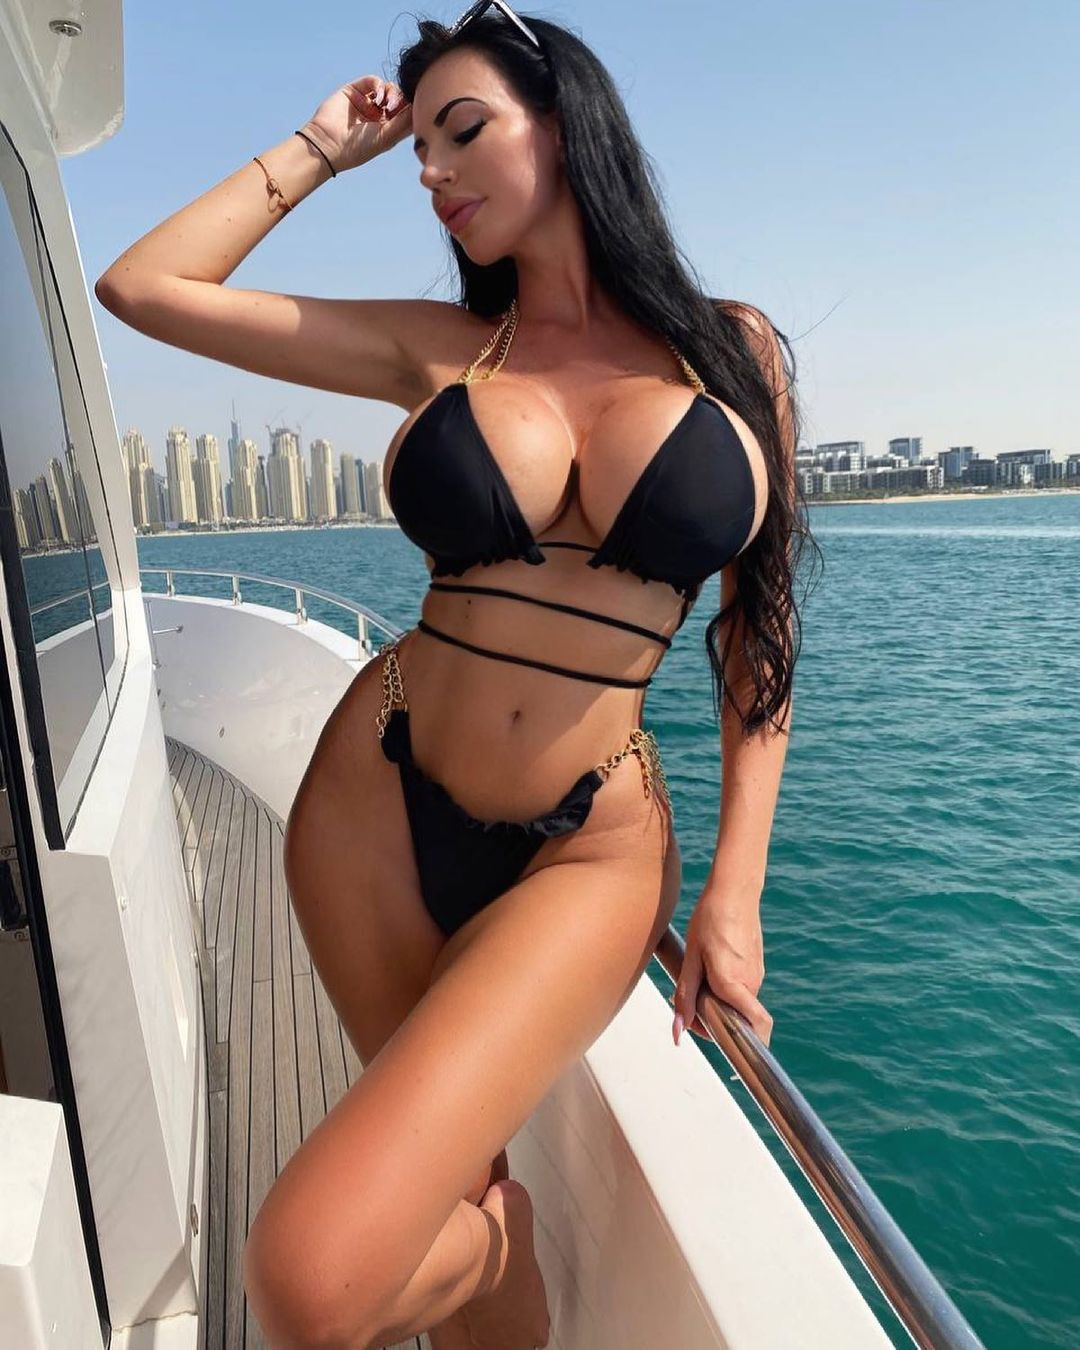 Yvonne bar one of the Instagram models draws attention with its big breasts 6